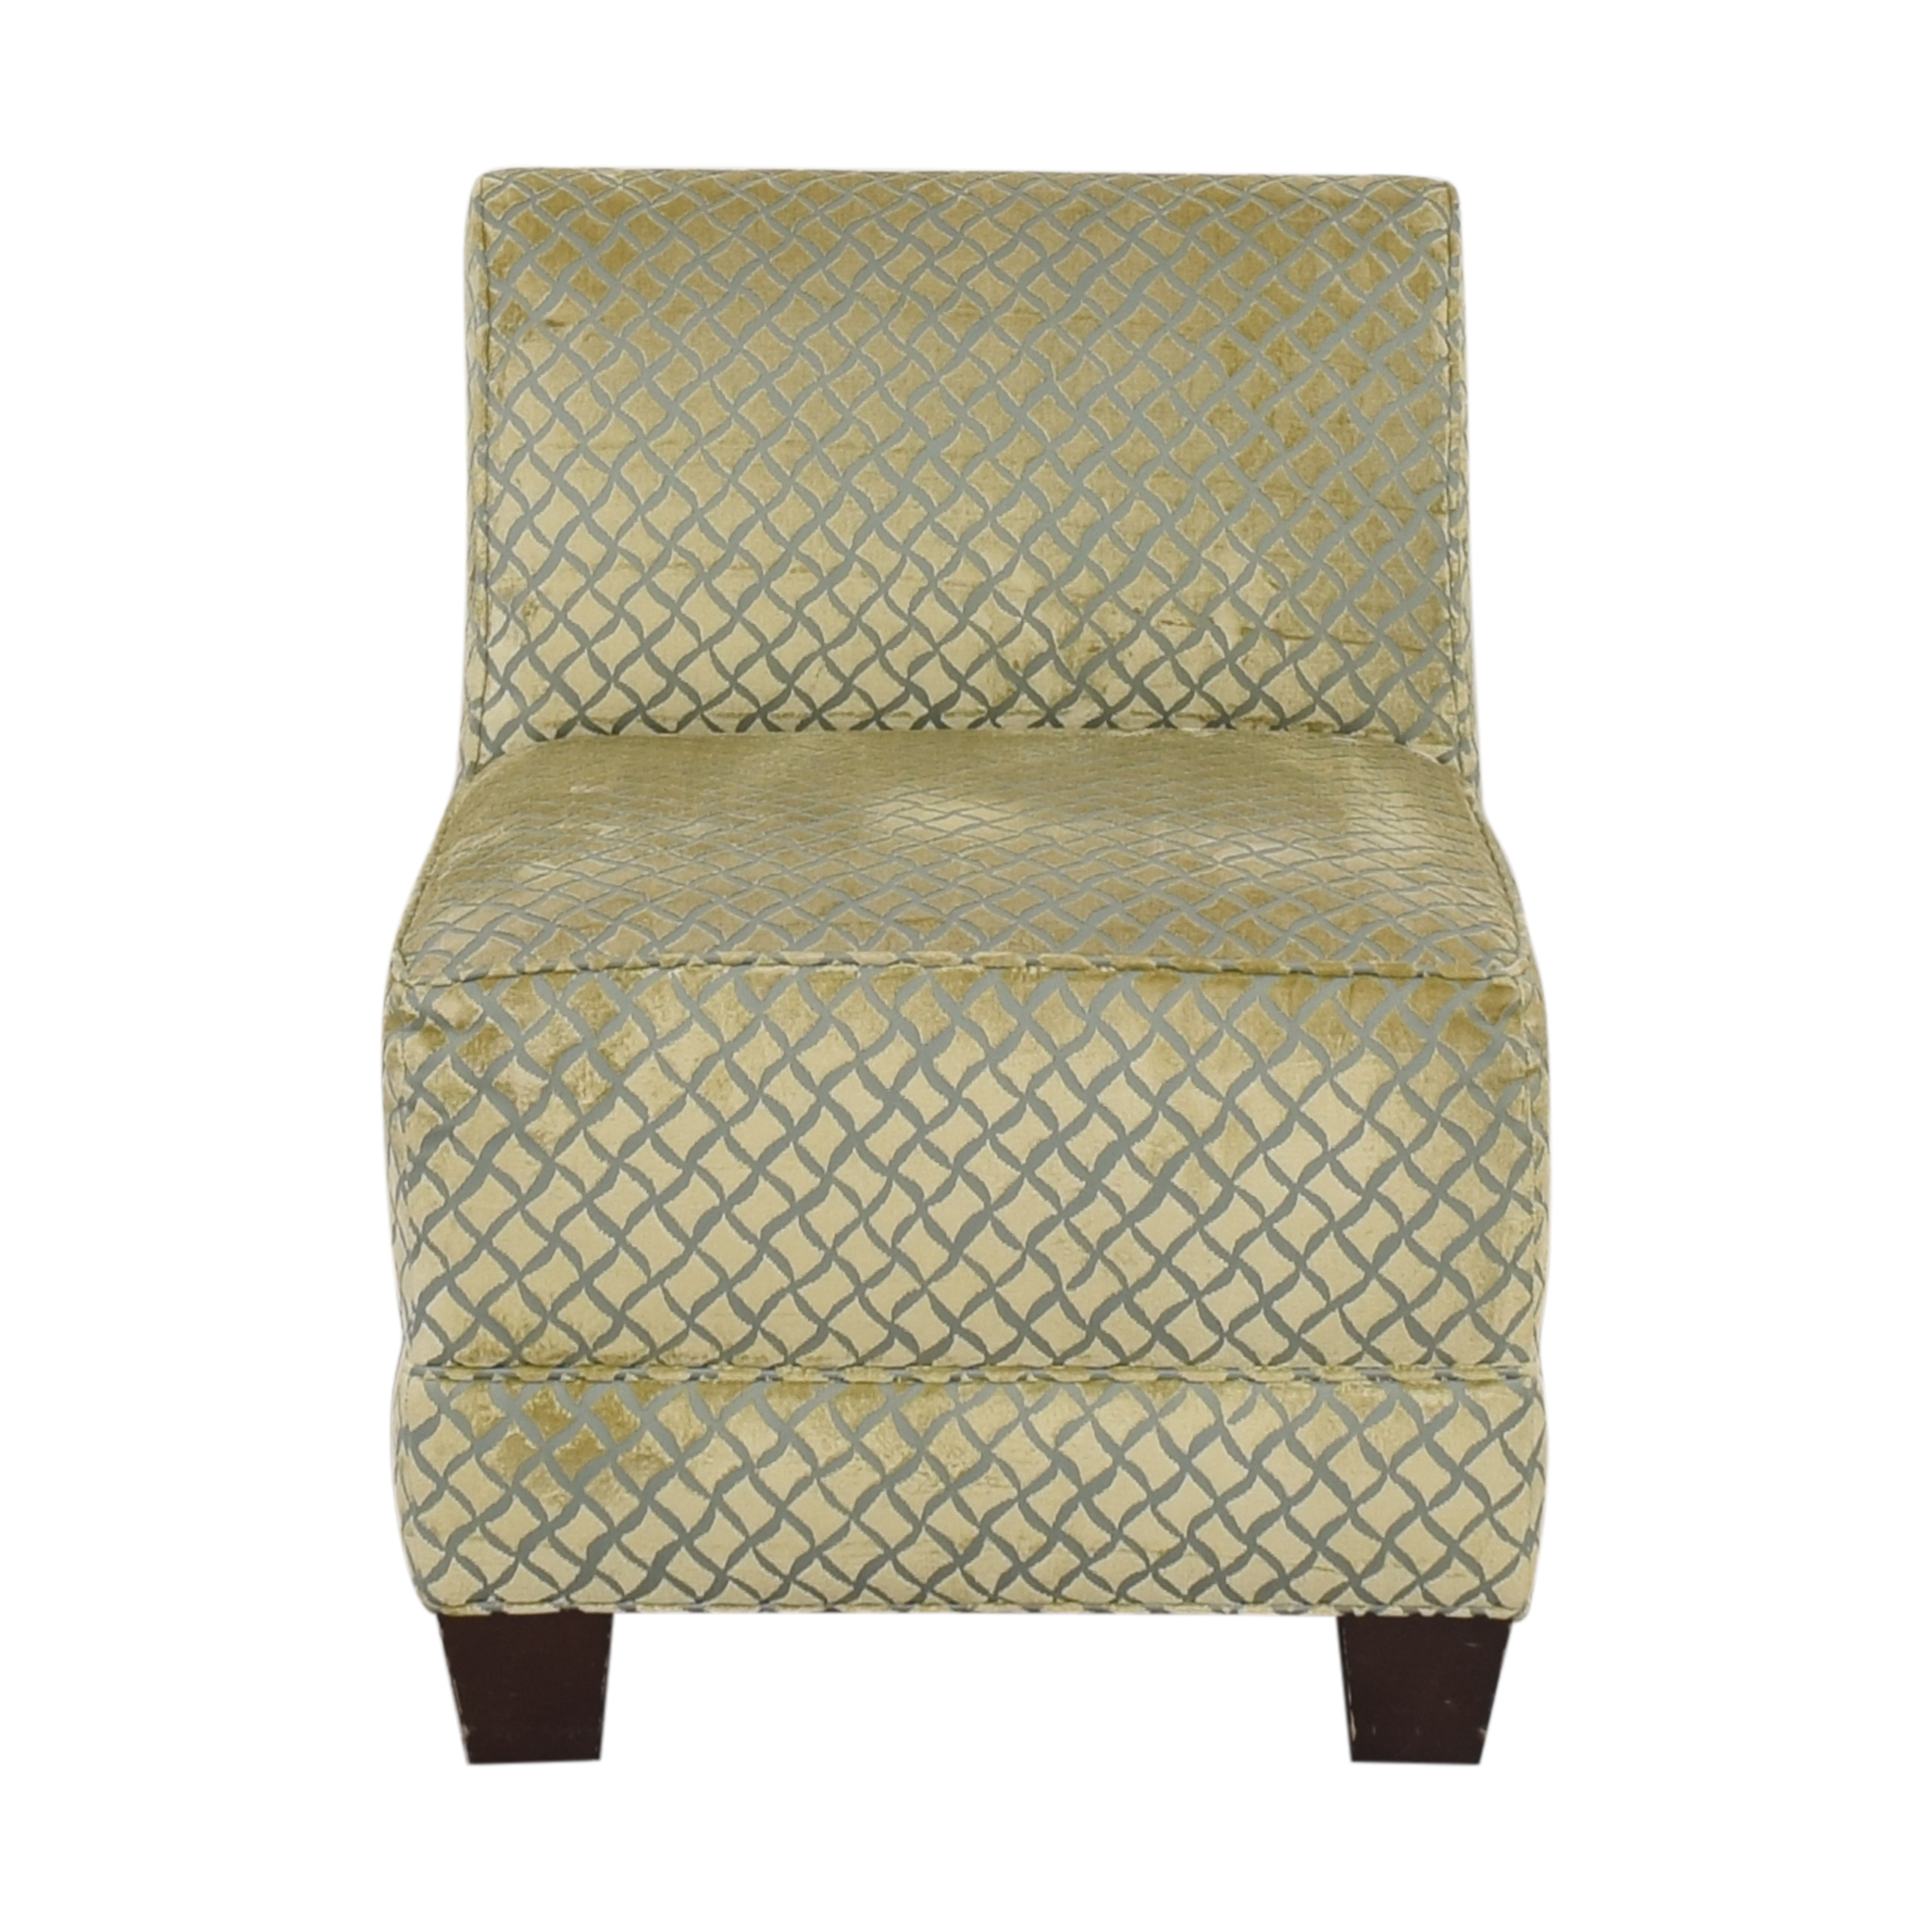 buy Kravet Kravet Upholstered Slipper Chair online